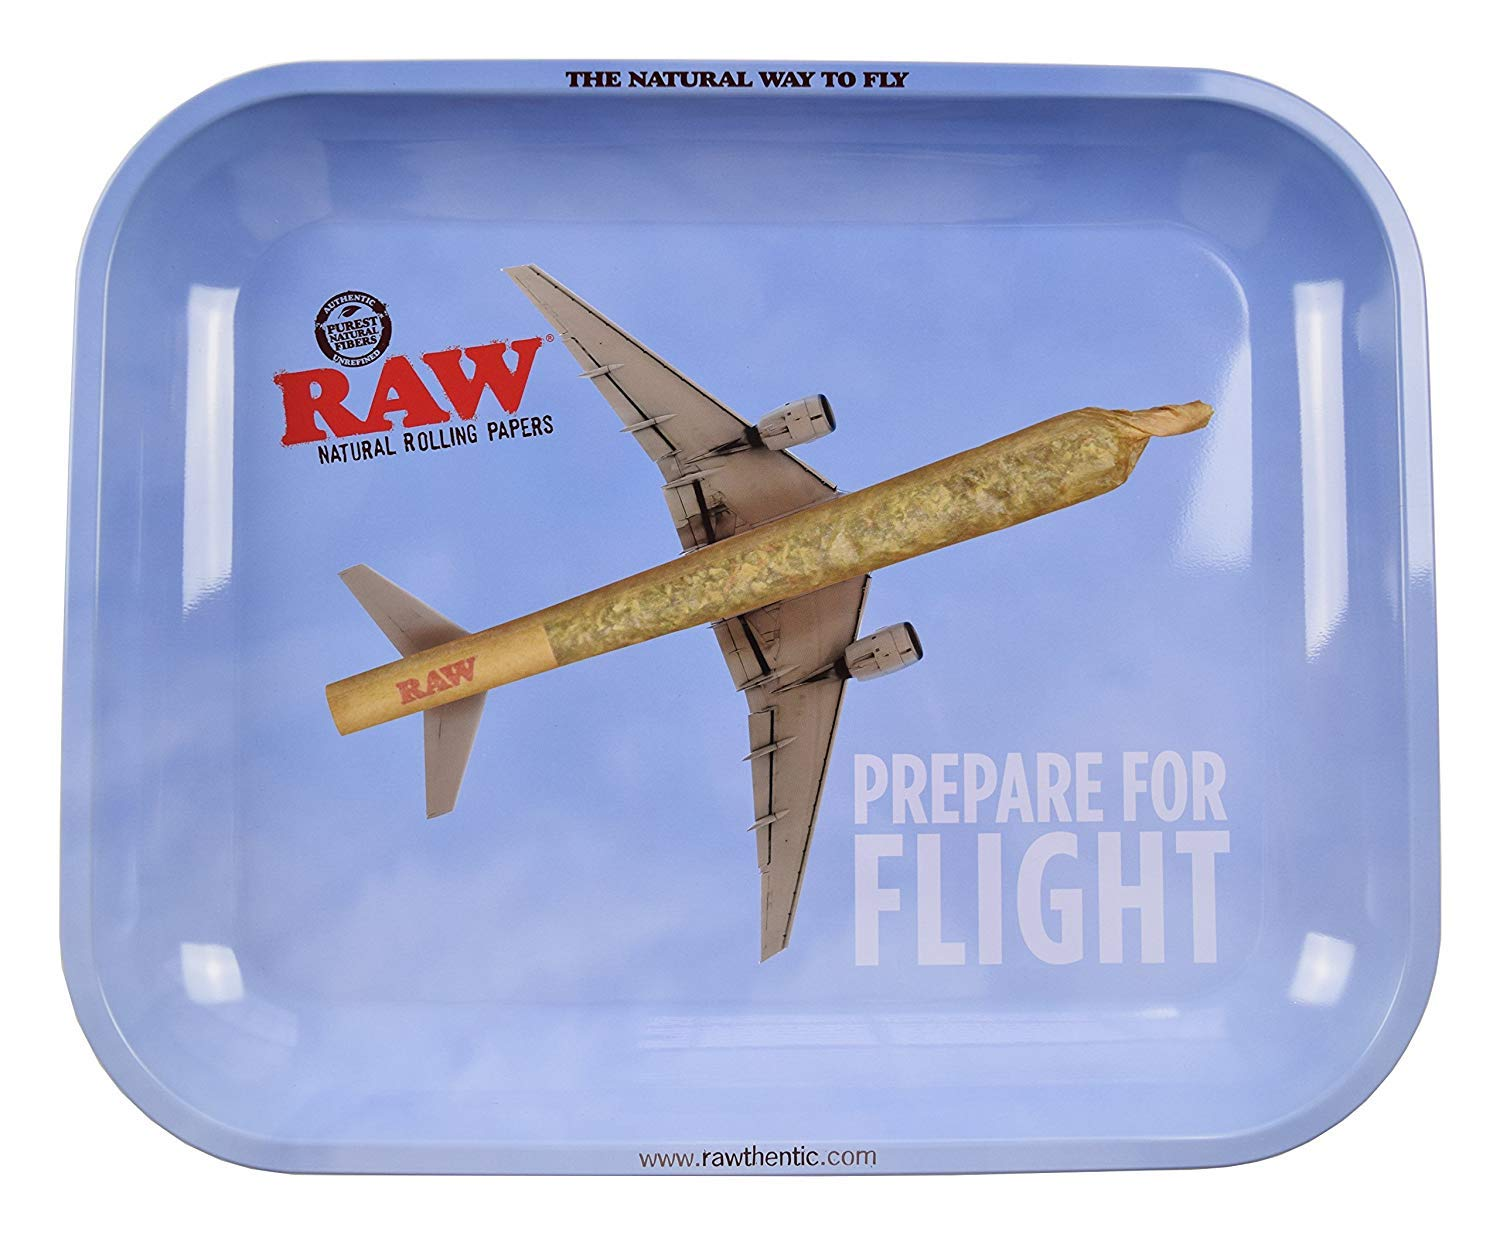 RAW Prepare for Flight Metal Rolling Tray (Large 13.5''x11'') by RAW